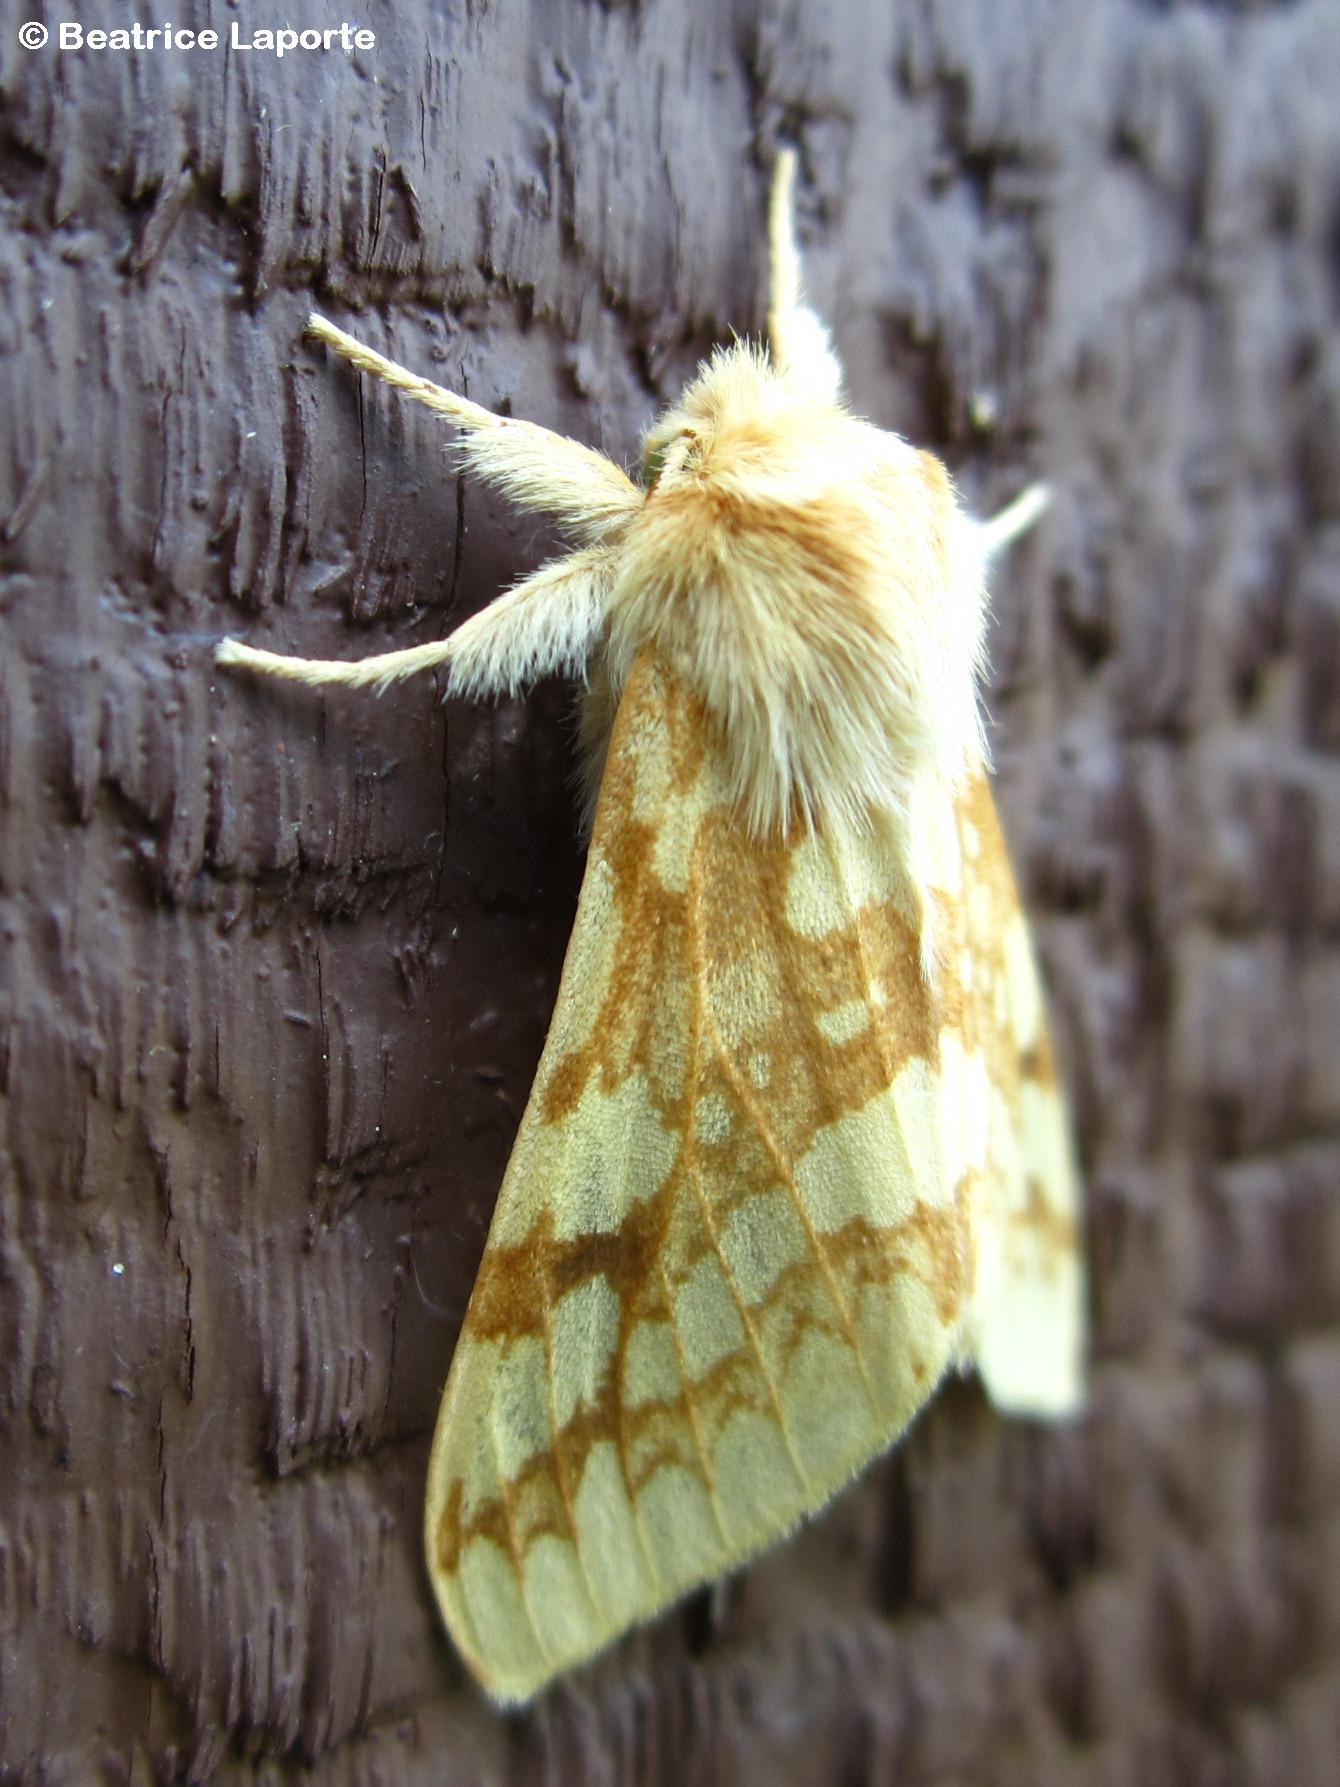 Lophocampa_maculata_Spotted_Tussock Moth_1505_Beatrice_Laporte